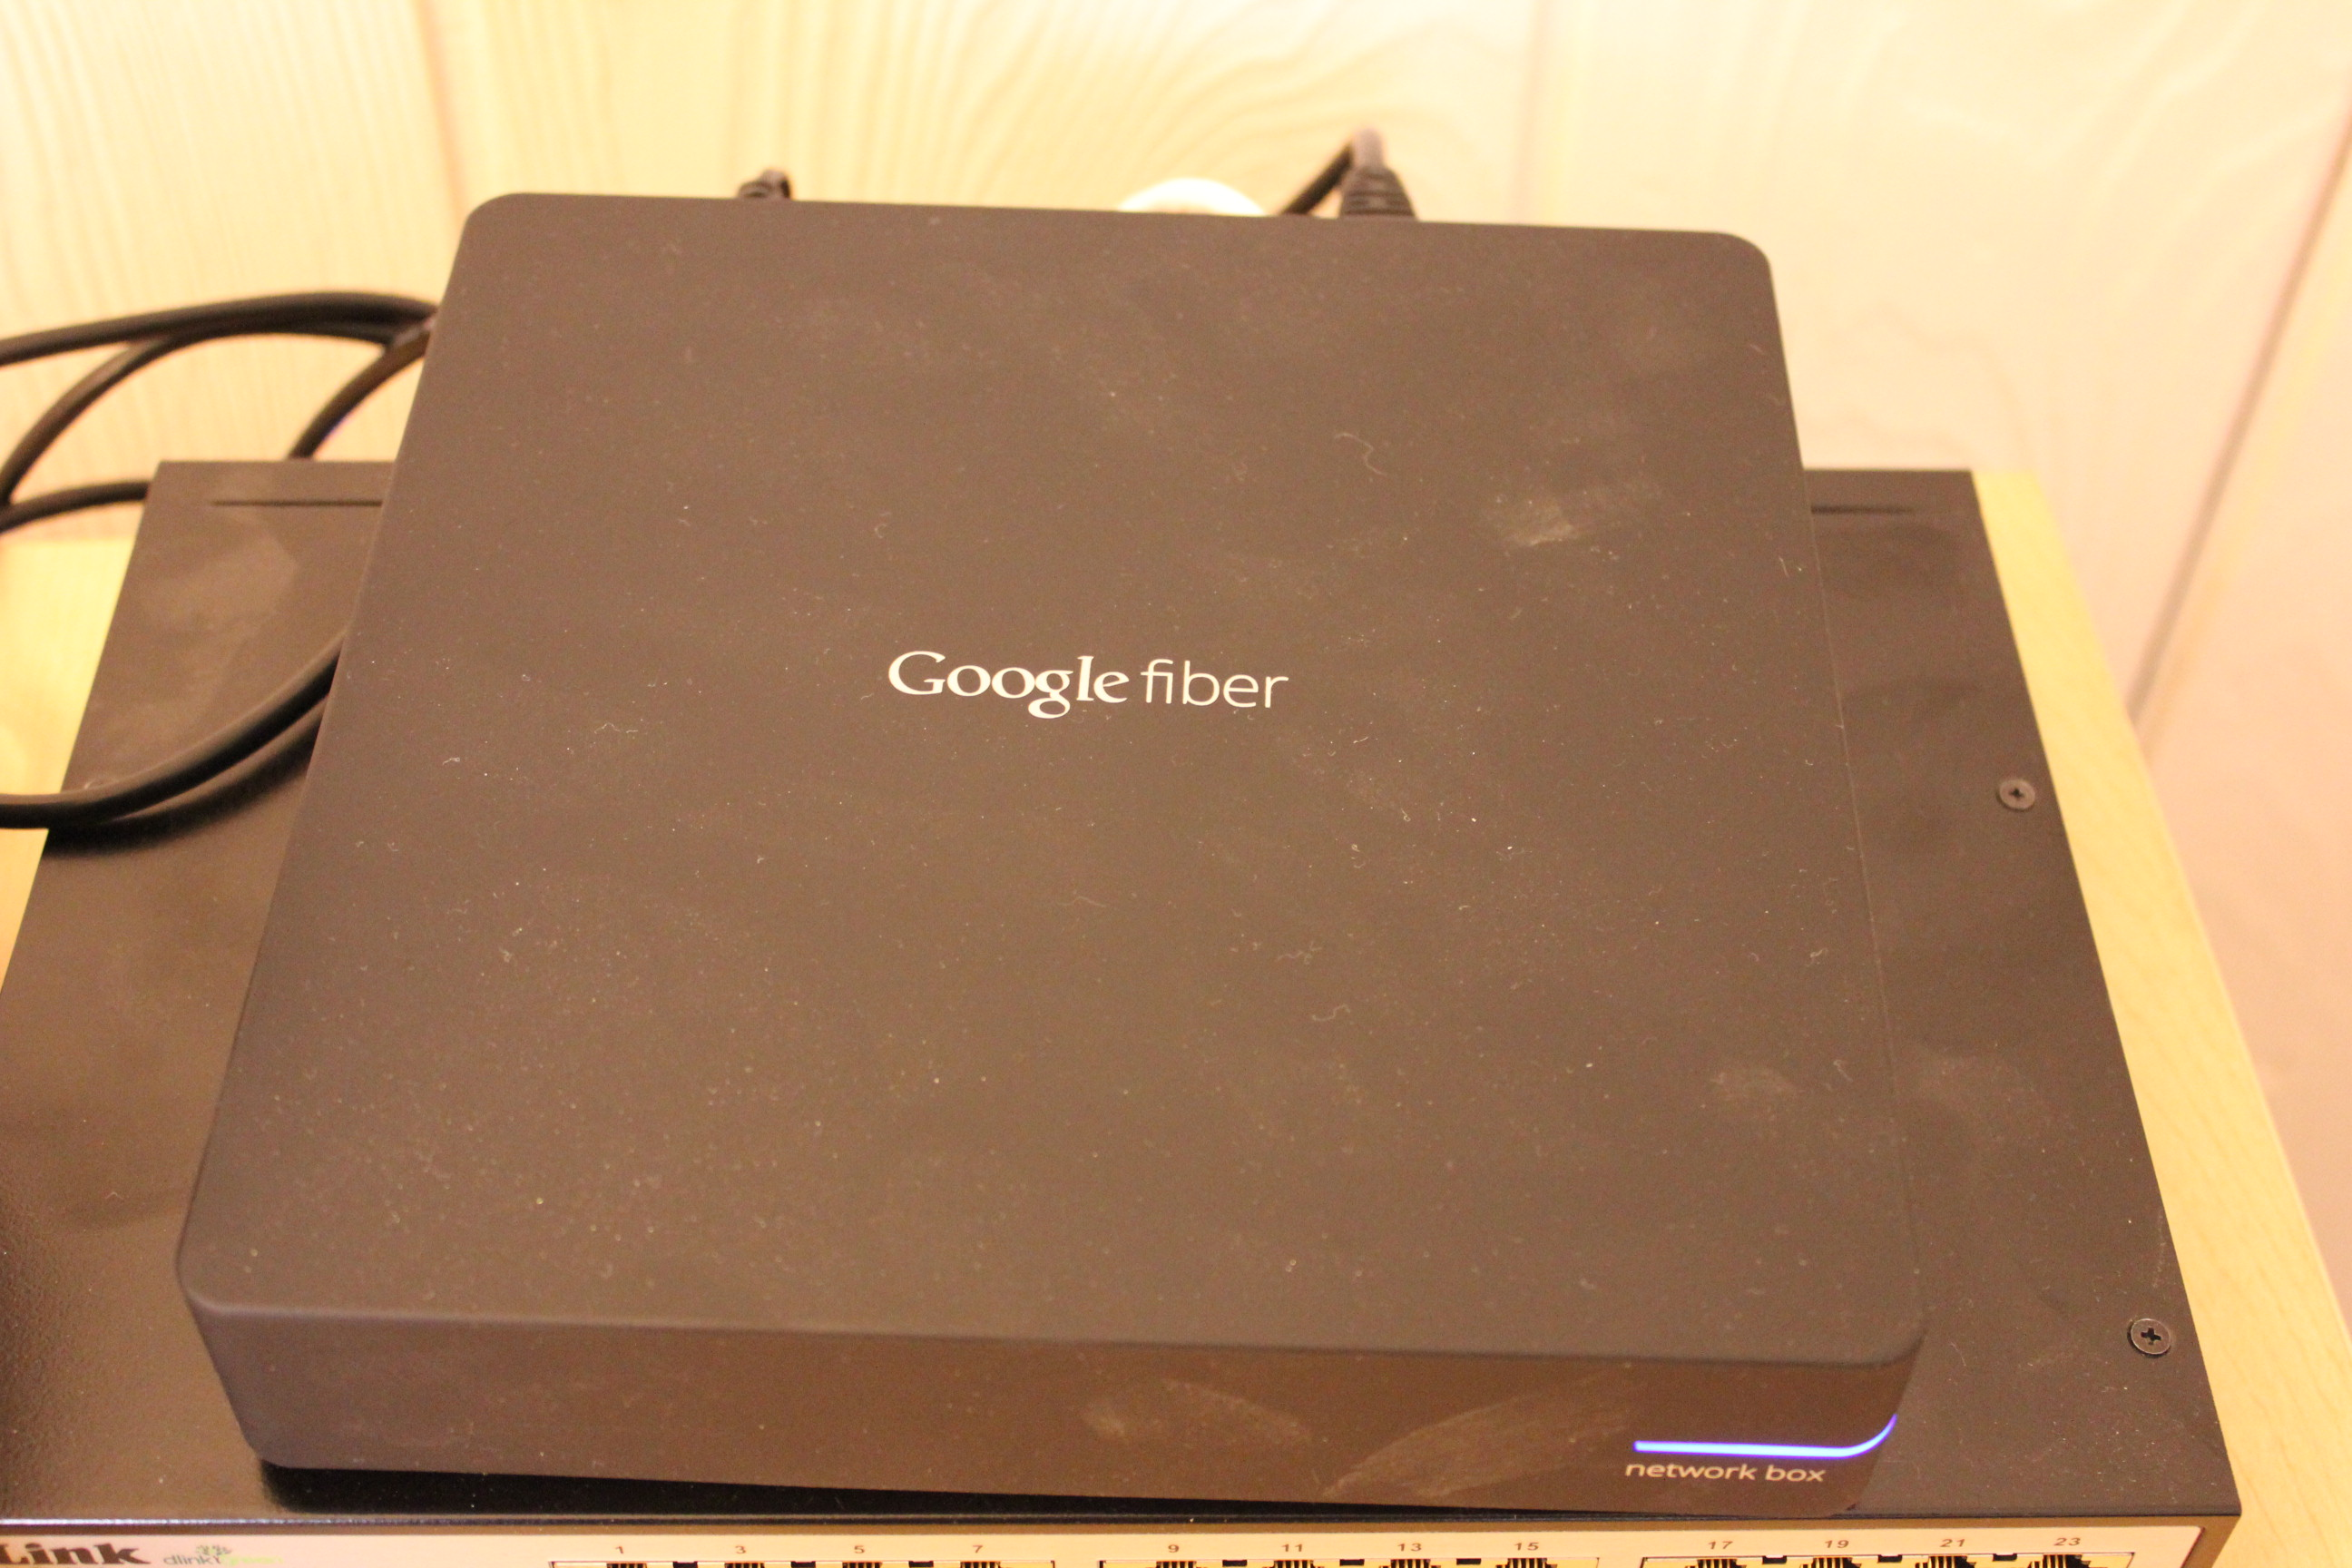 The Google fiber box, in all its glory.